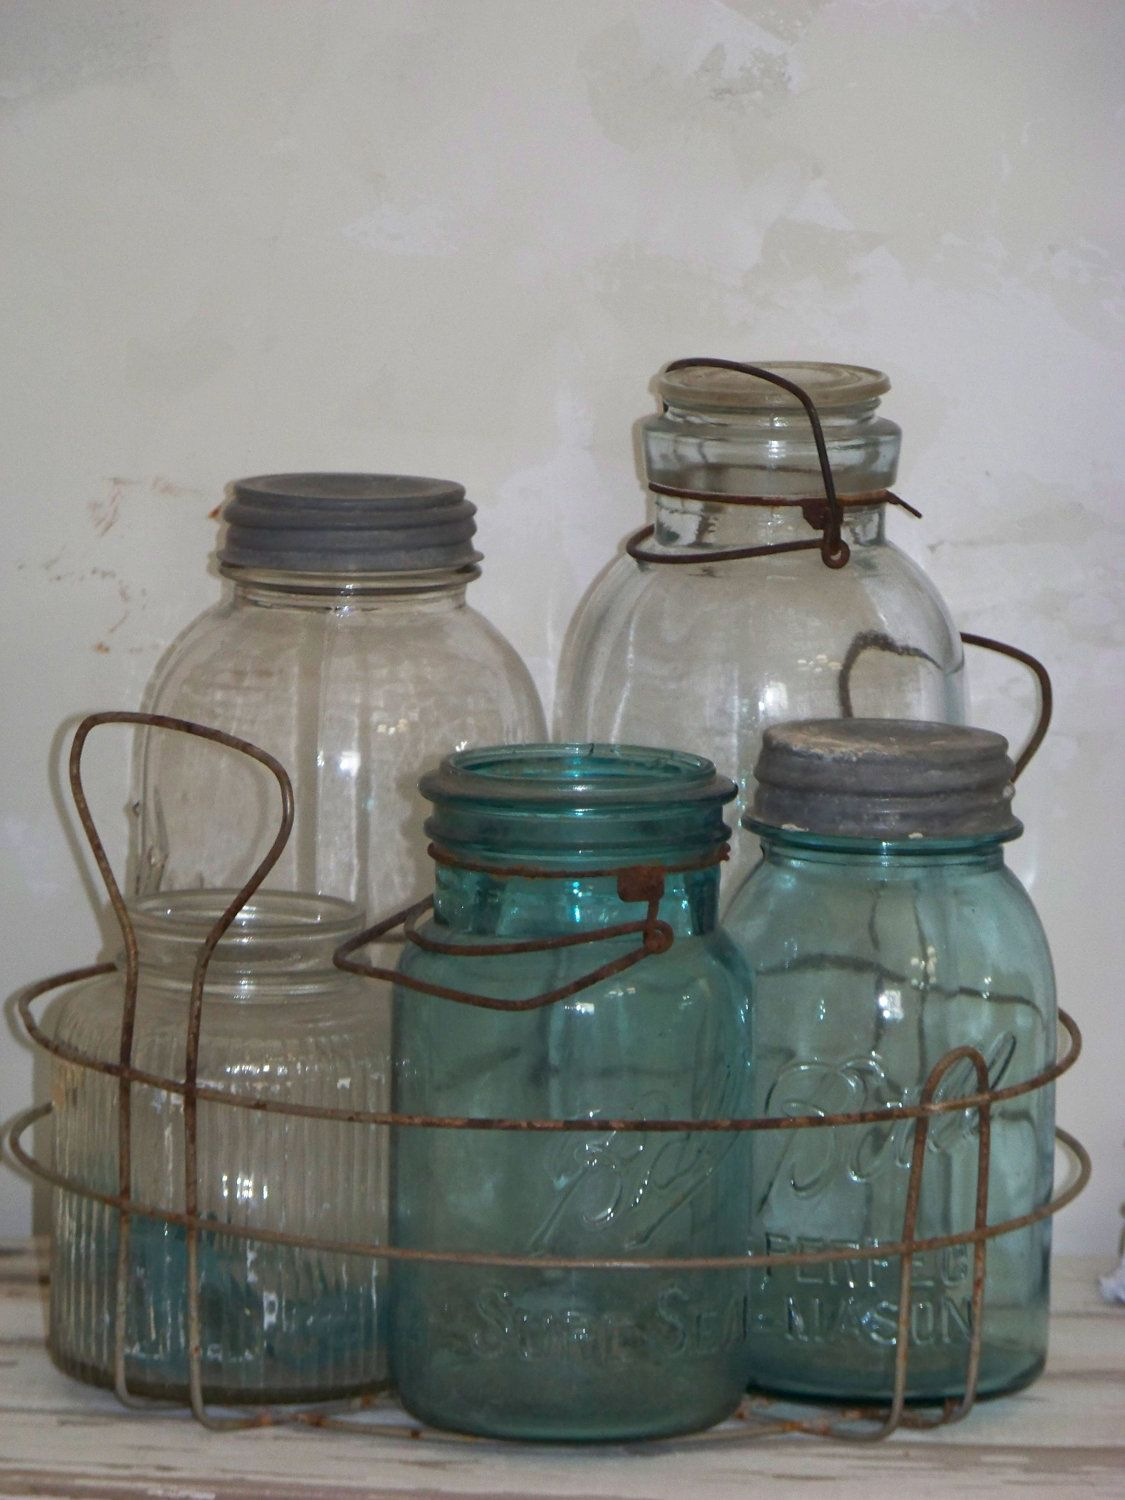 Items similar to Vintage Home Canning Basket Container on Etsy. , via Etsy. no longer available, love the look of the old canner rack